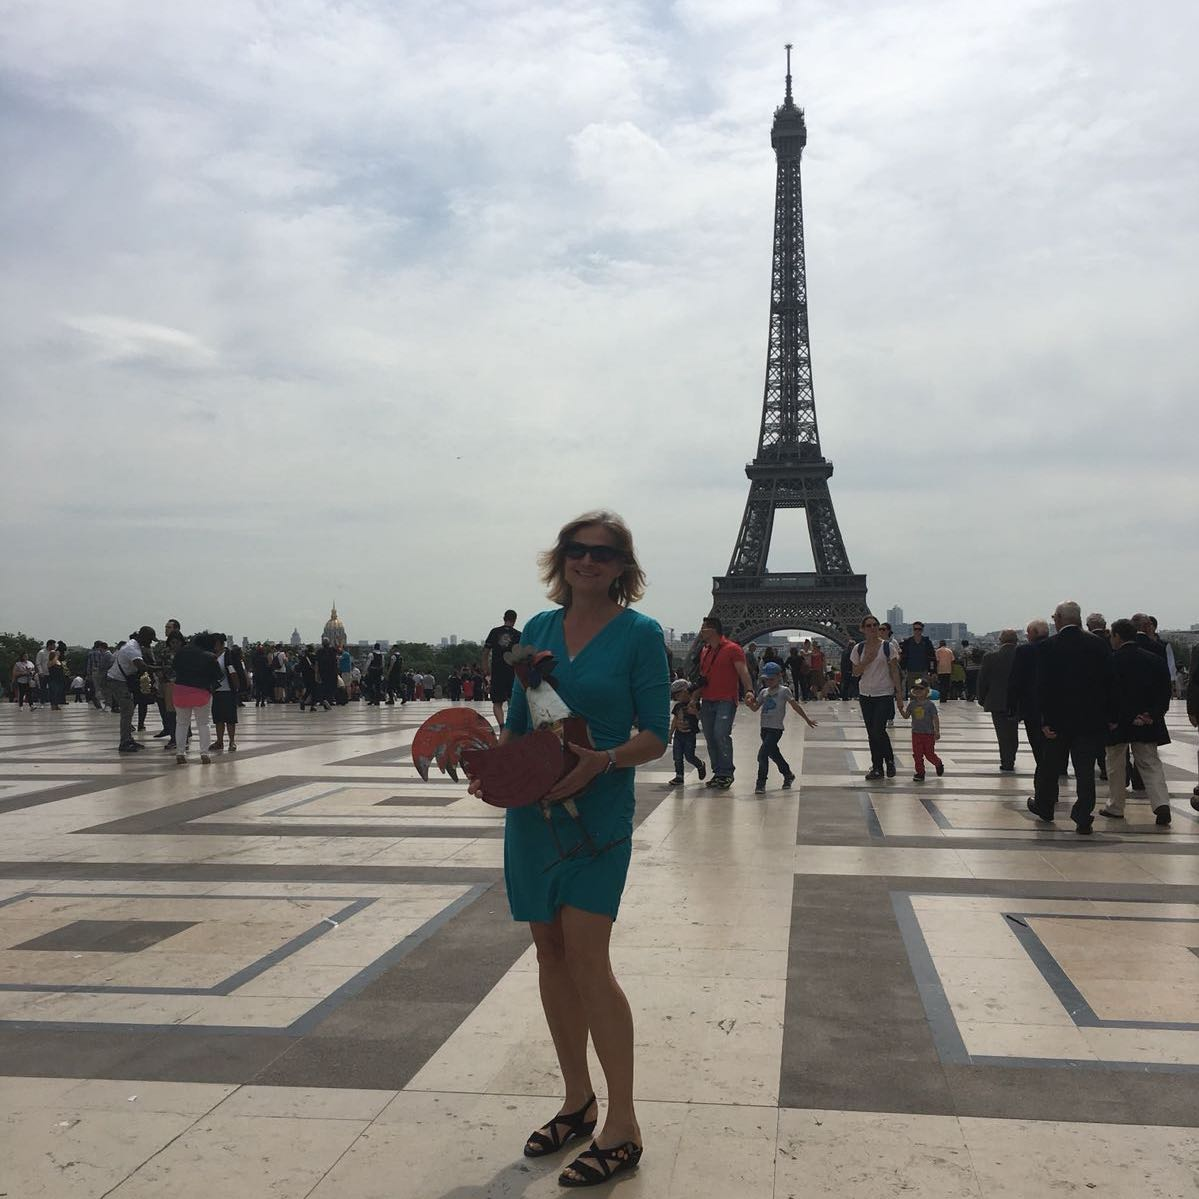 A woman holding a rooster in front of the Eiffel Tower